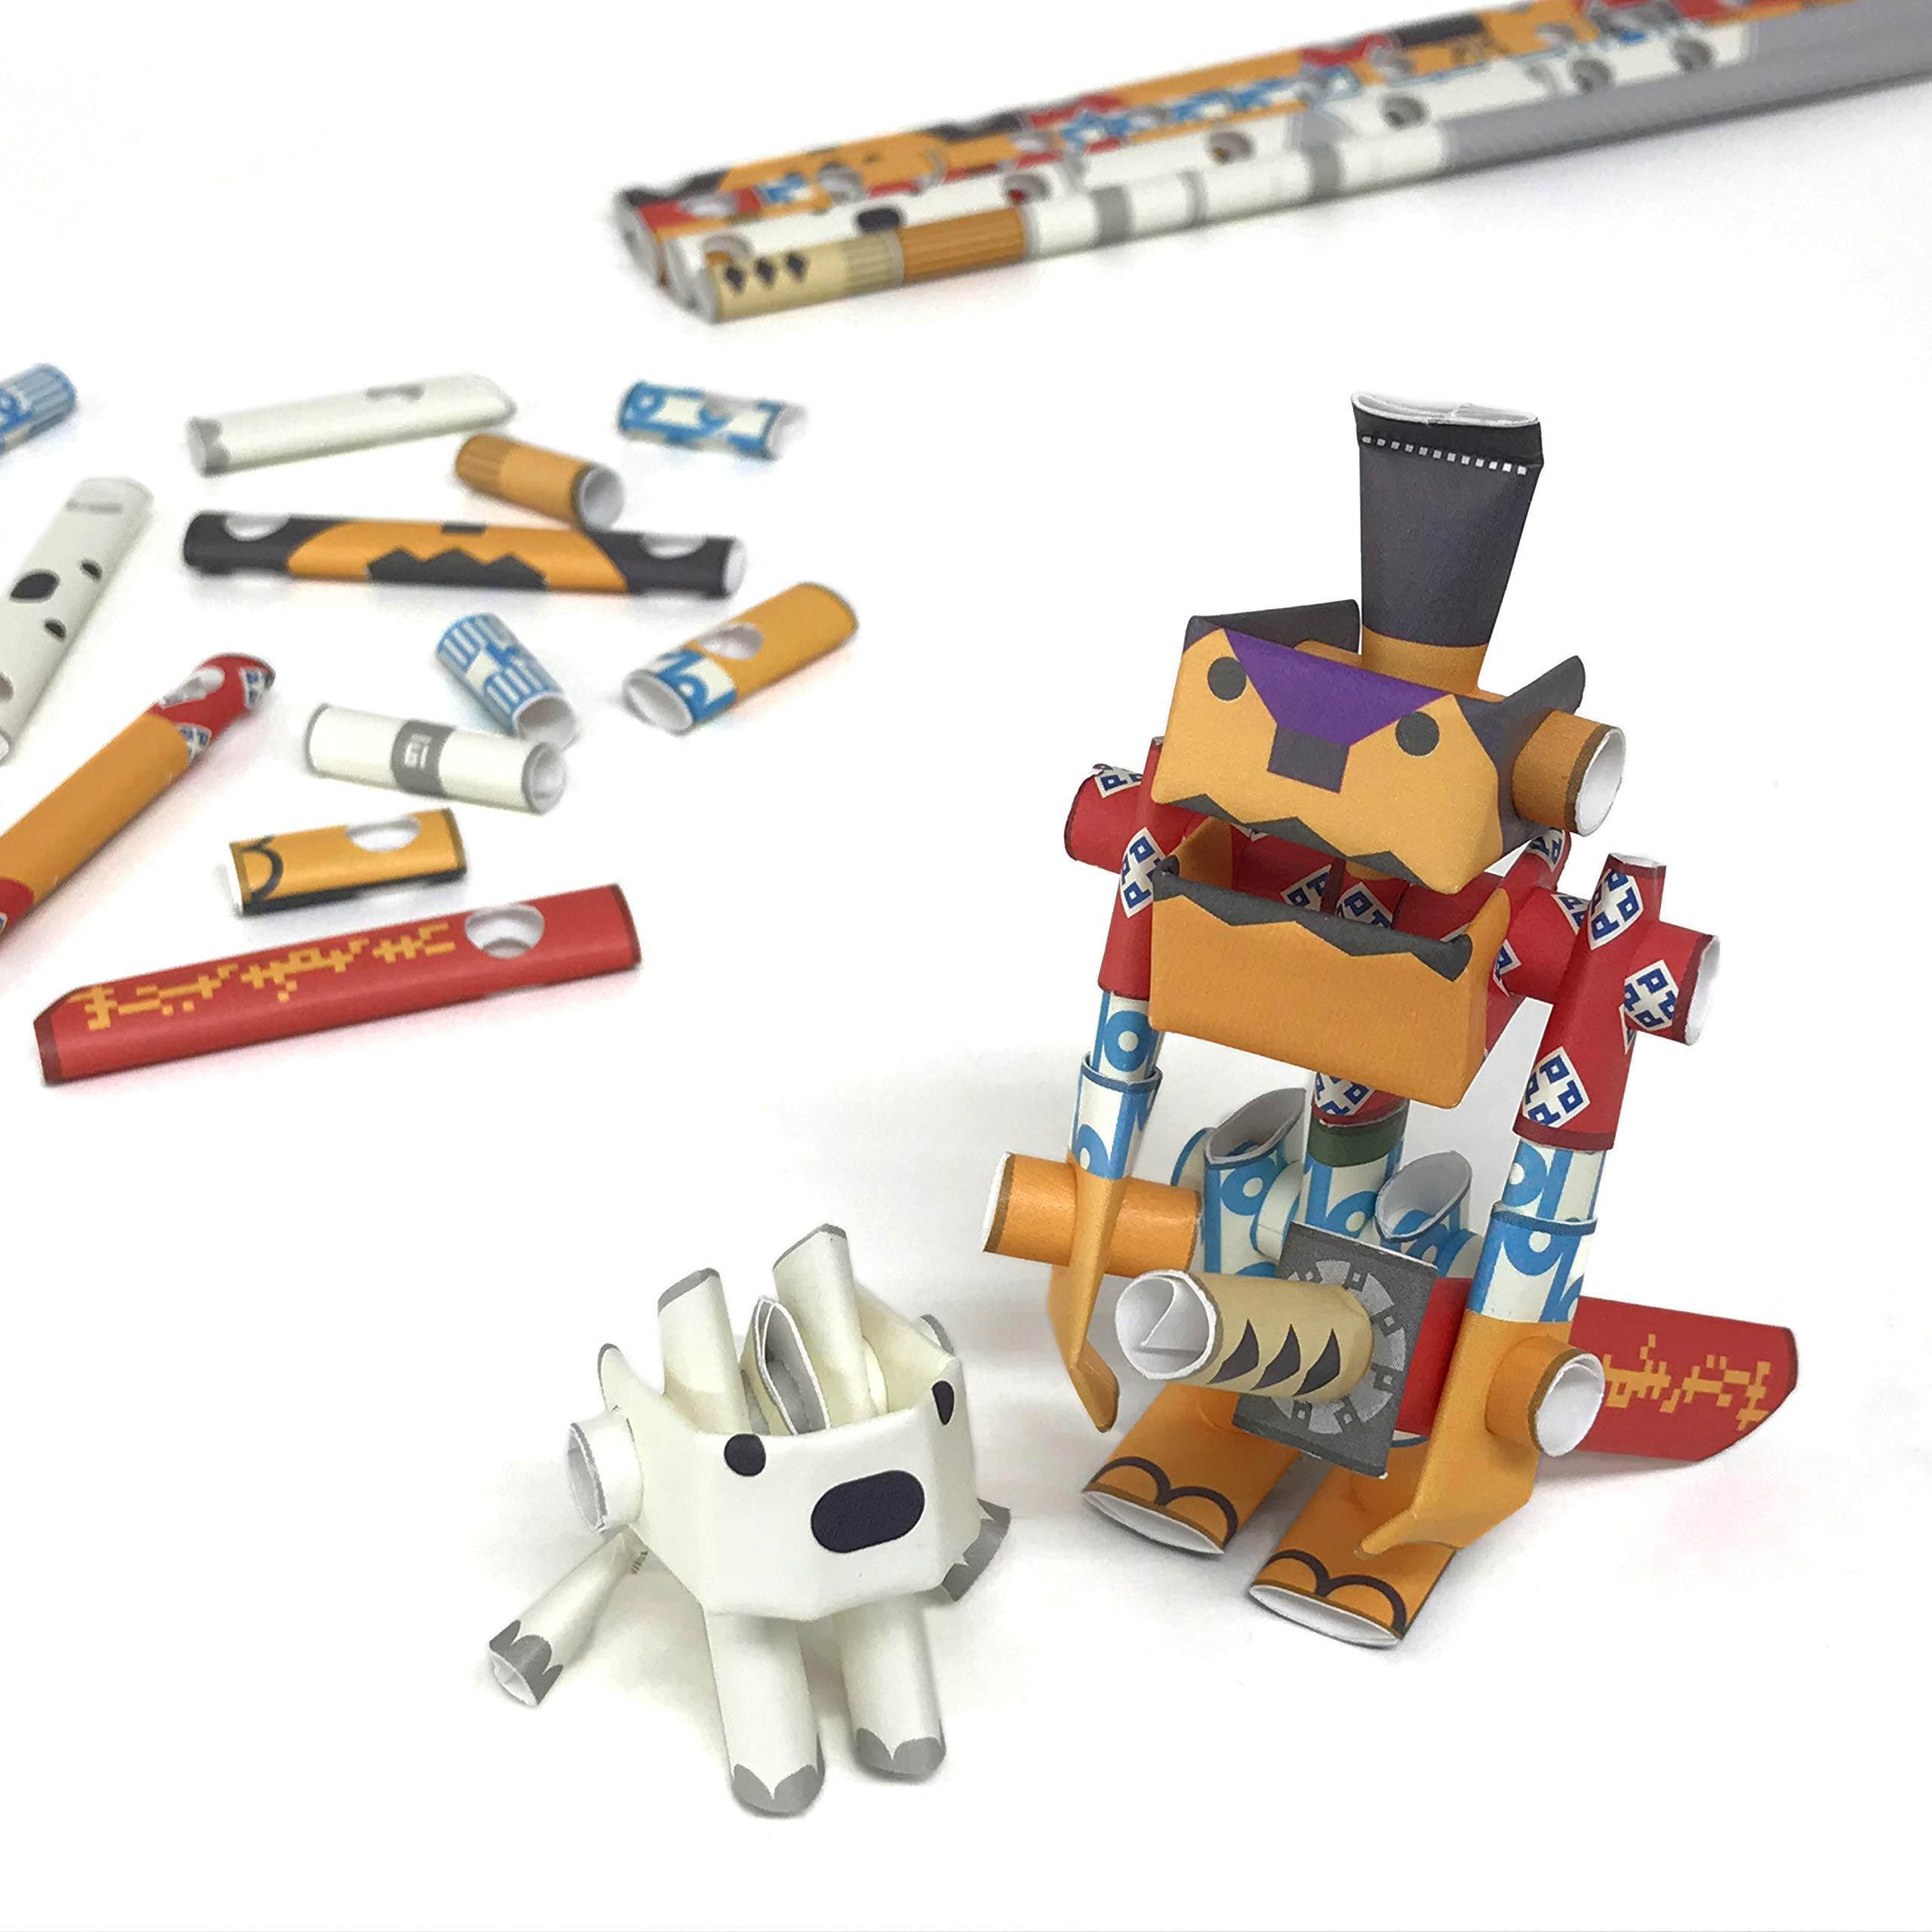 PIPEROID DIY 3D Puzzle Paper Craft Kit Rokusuke & Hachi Samurai & His Dog - Japanese Arts and Craft Kit for Kids and Adults - Birthday Gift and Party Favor for Origami Paper Craft Enthusiasts